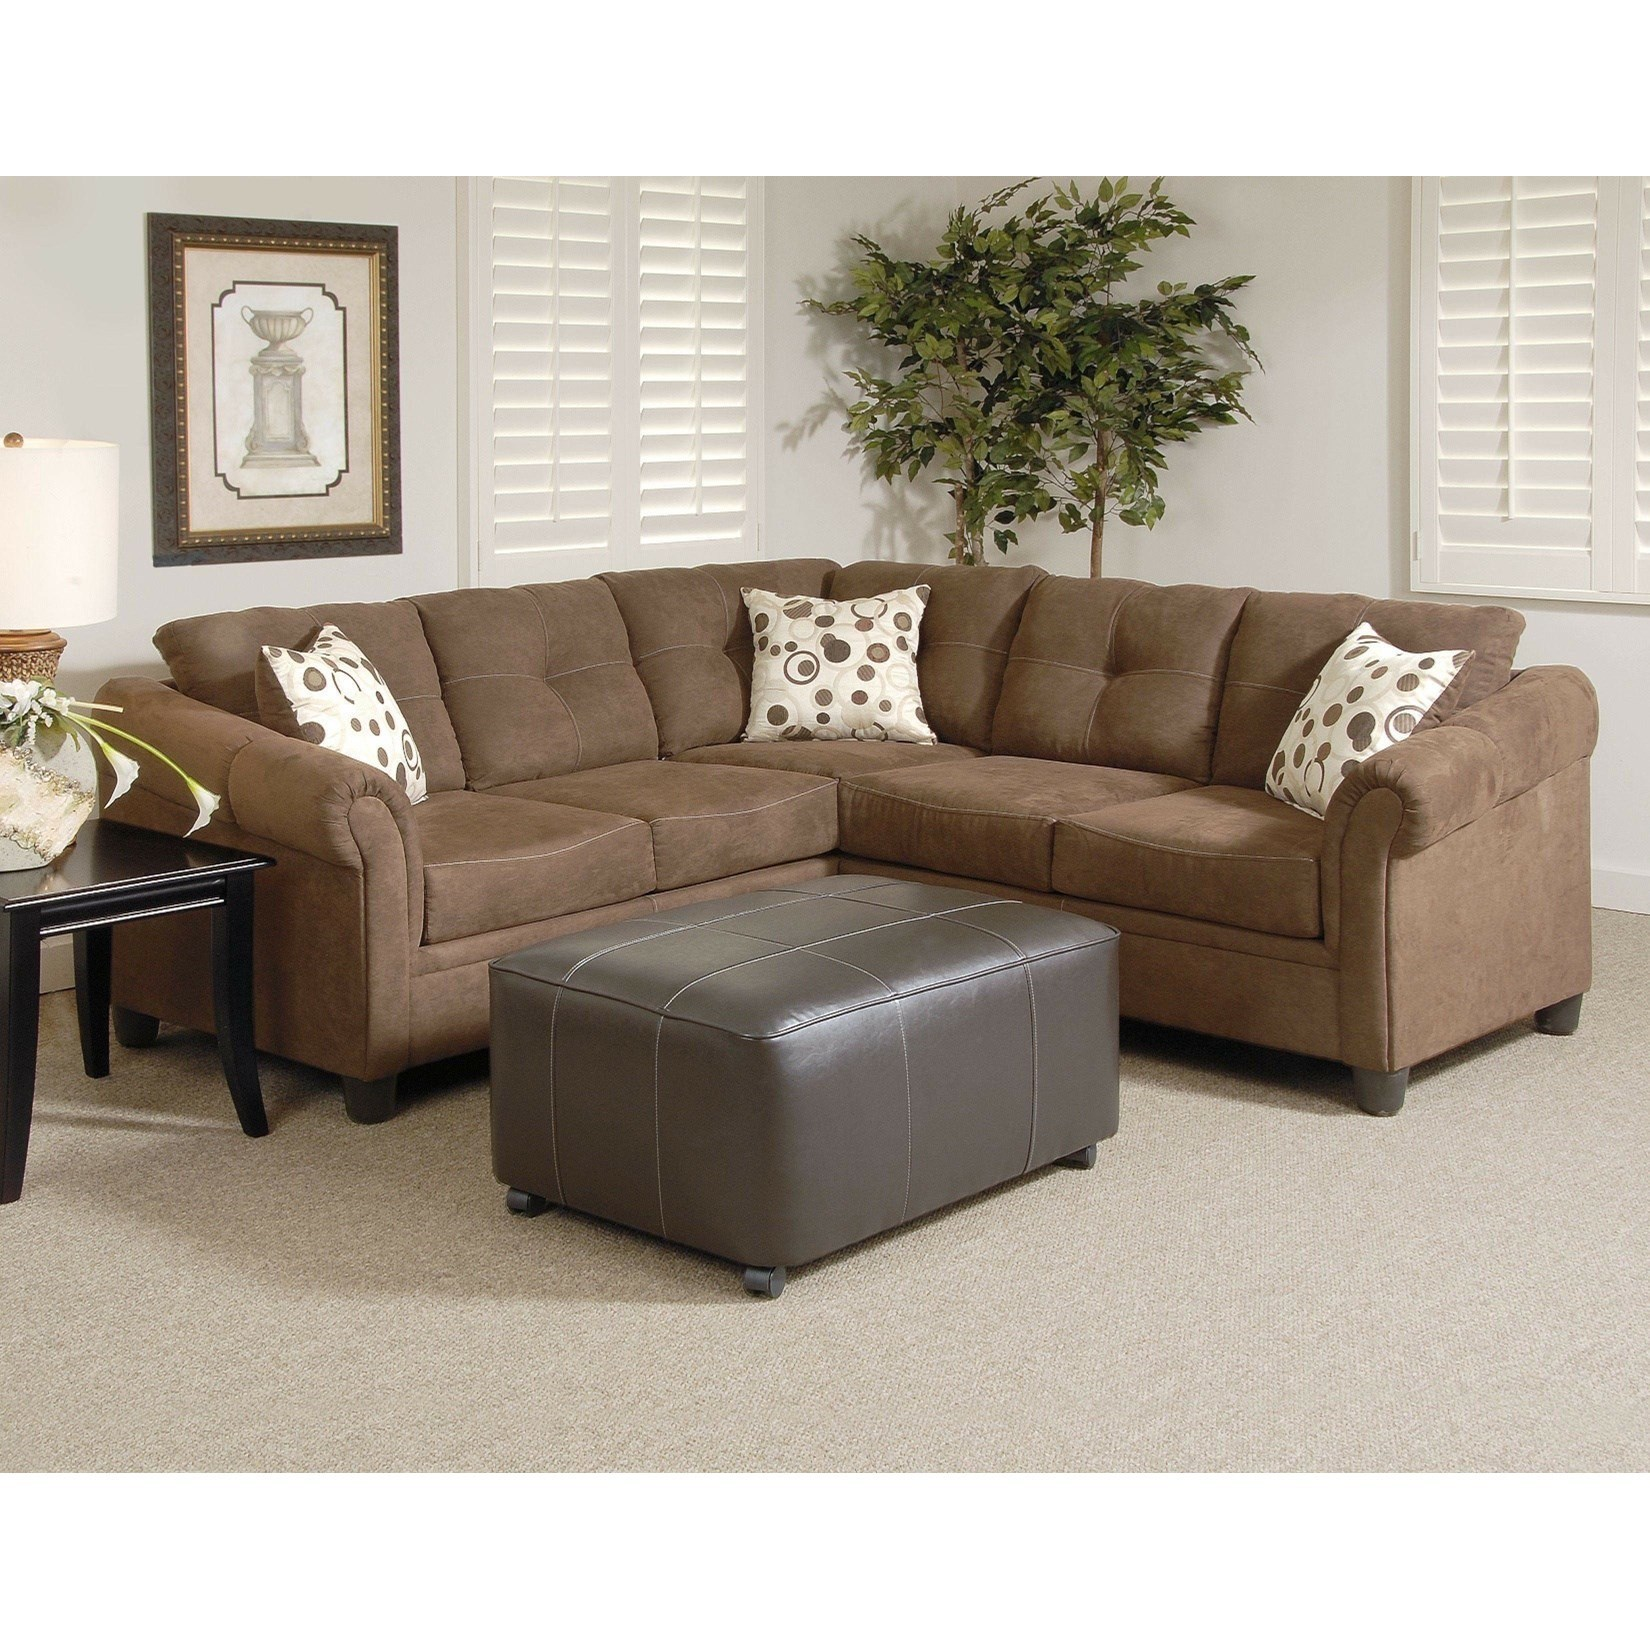 Serta Upholstery by Hughes Furniture 900 Casual Sectional Sofa with Tufted Pillow Backs  sc 1 st  Colderu0027s : serta sectional - Sectionals, Sofas & Couches